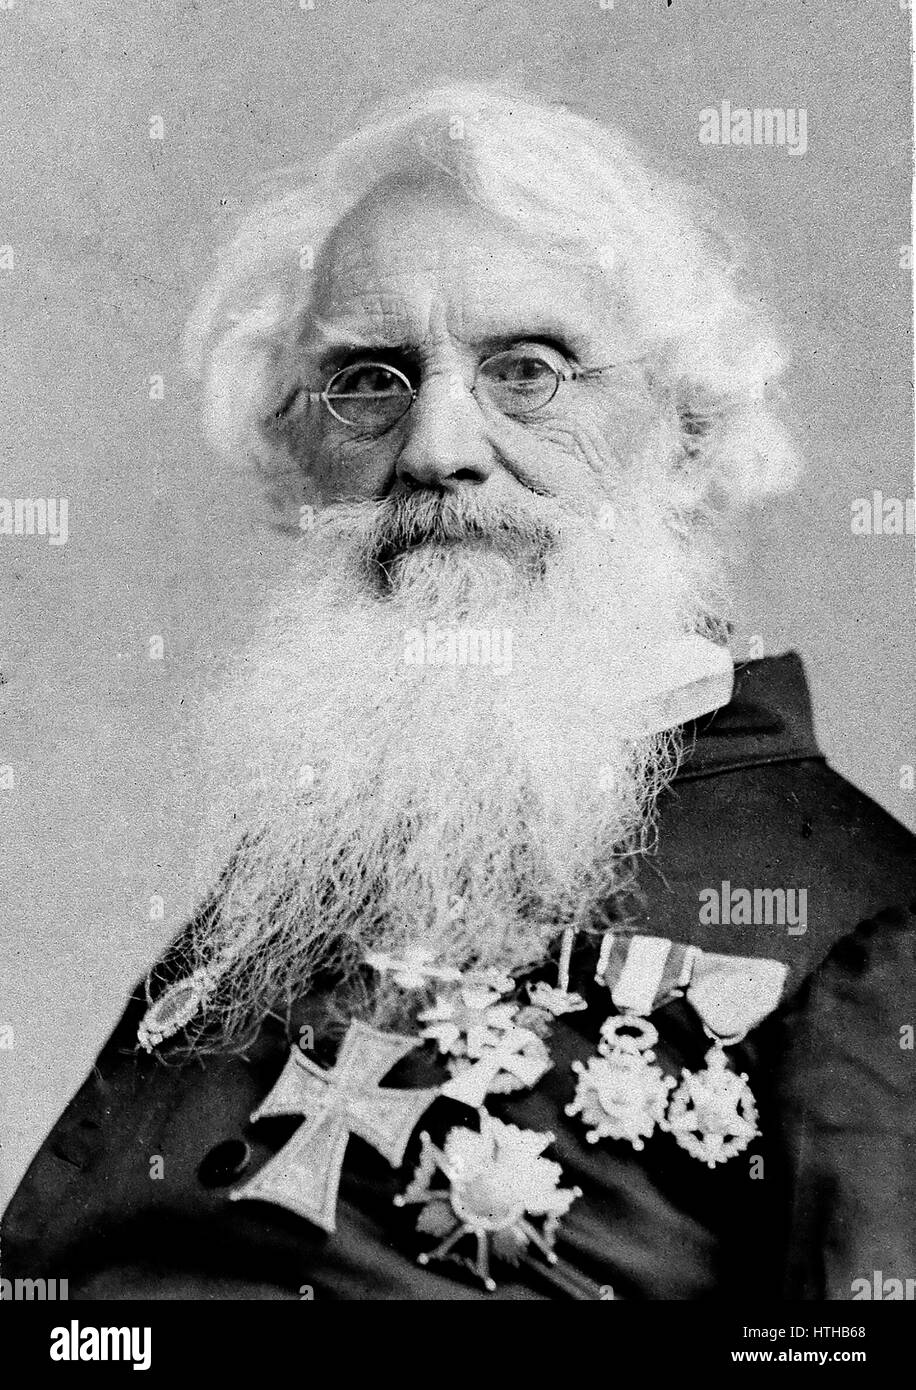 SAMUEL MORSE (1791-1872) American inventor after whom the Morse Code is named - Stock Image